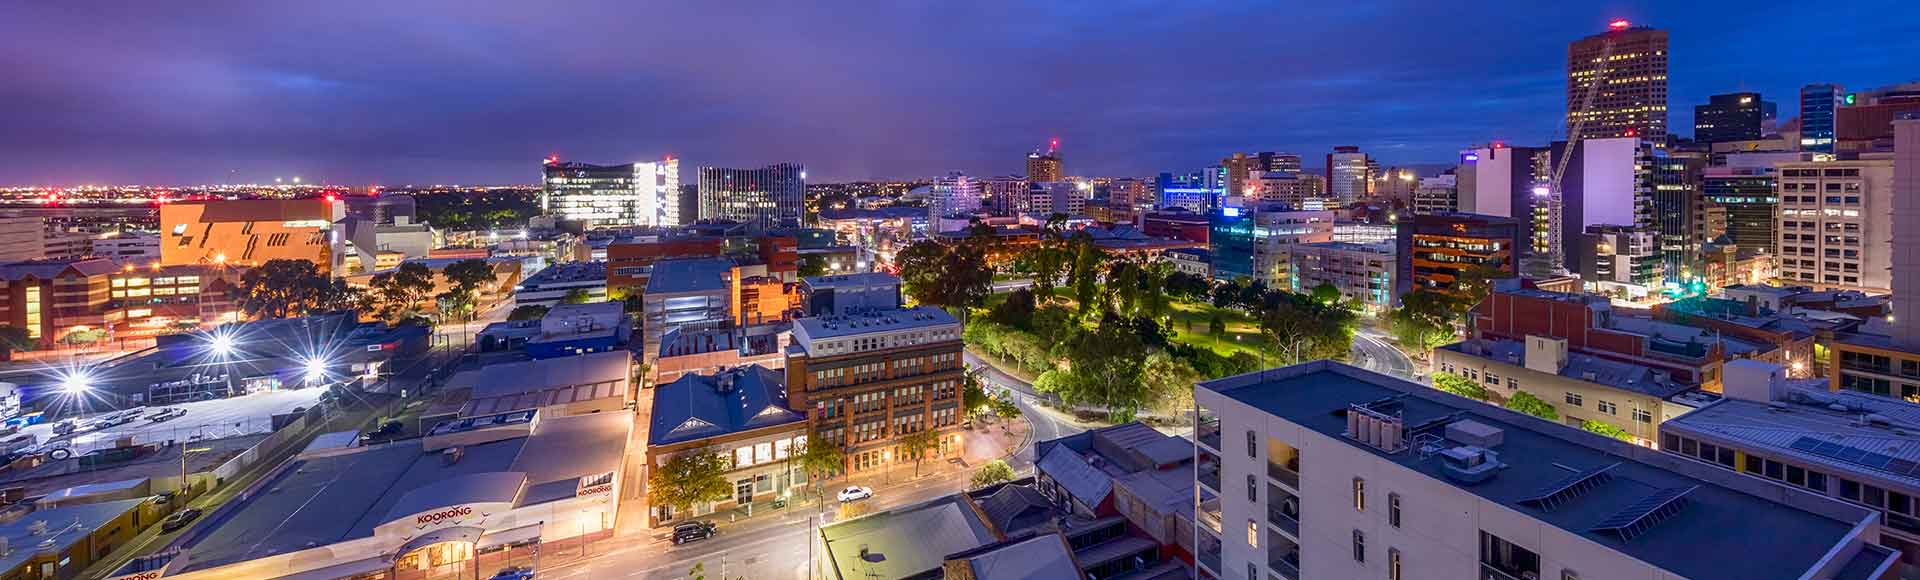 Gorgeous night city view of Adelaide